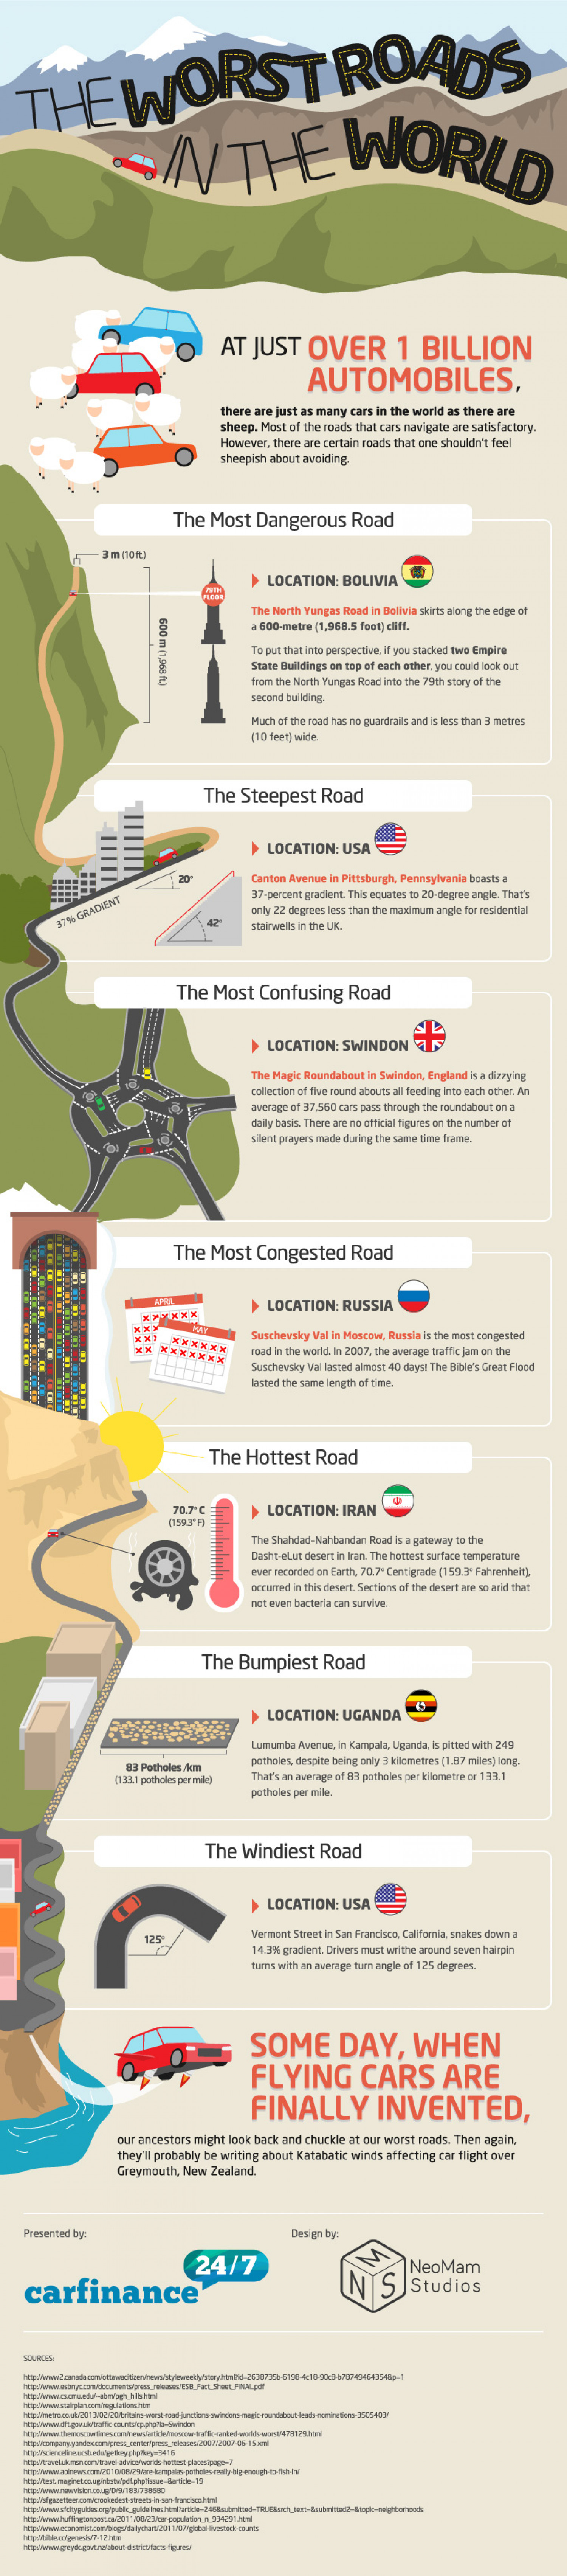 The Worst Roads in the World Infographic